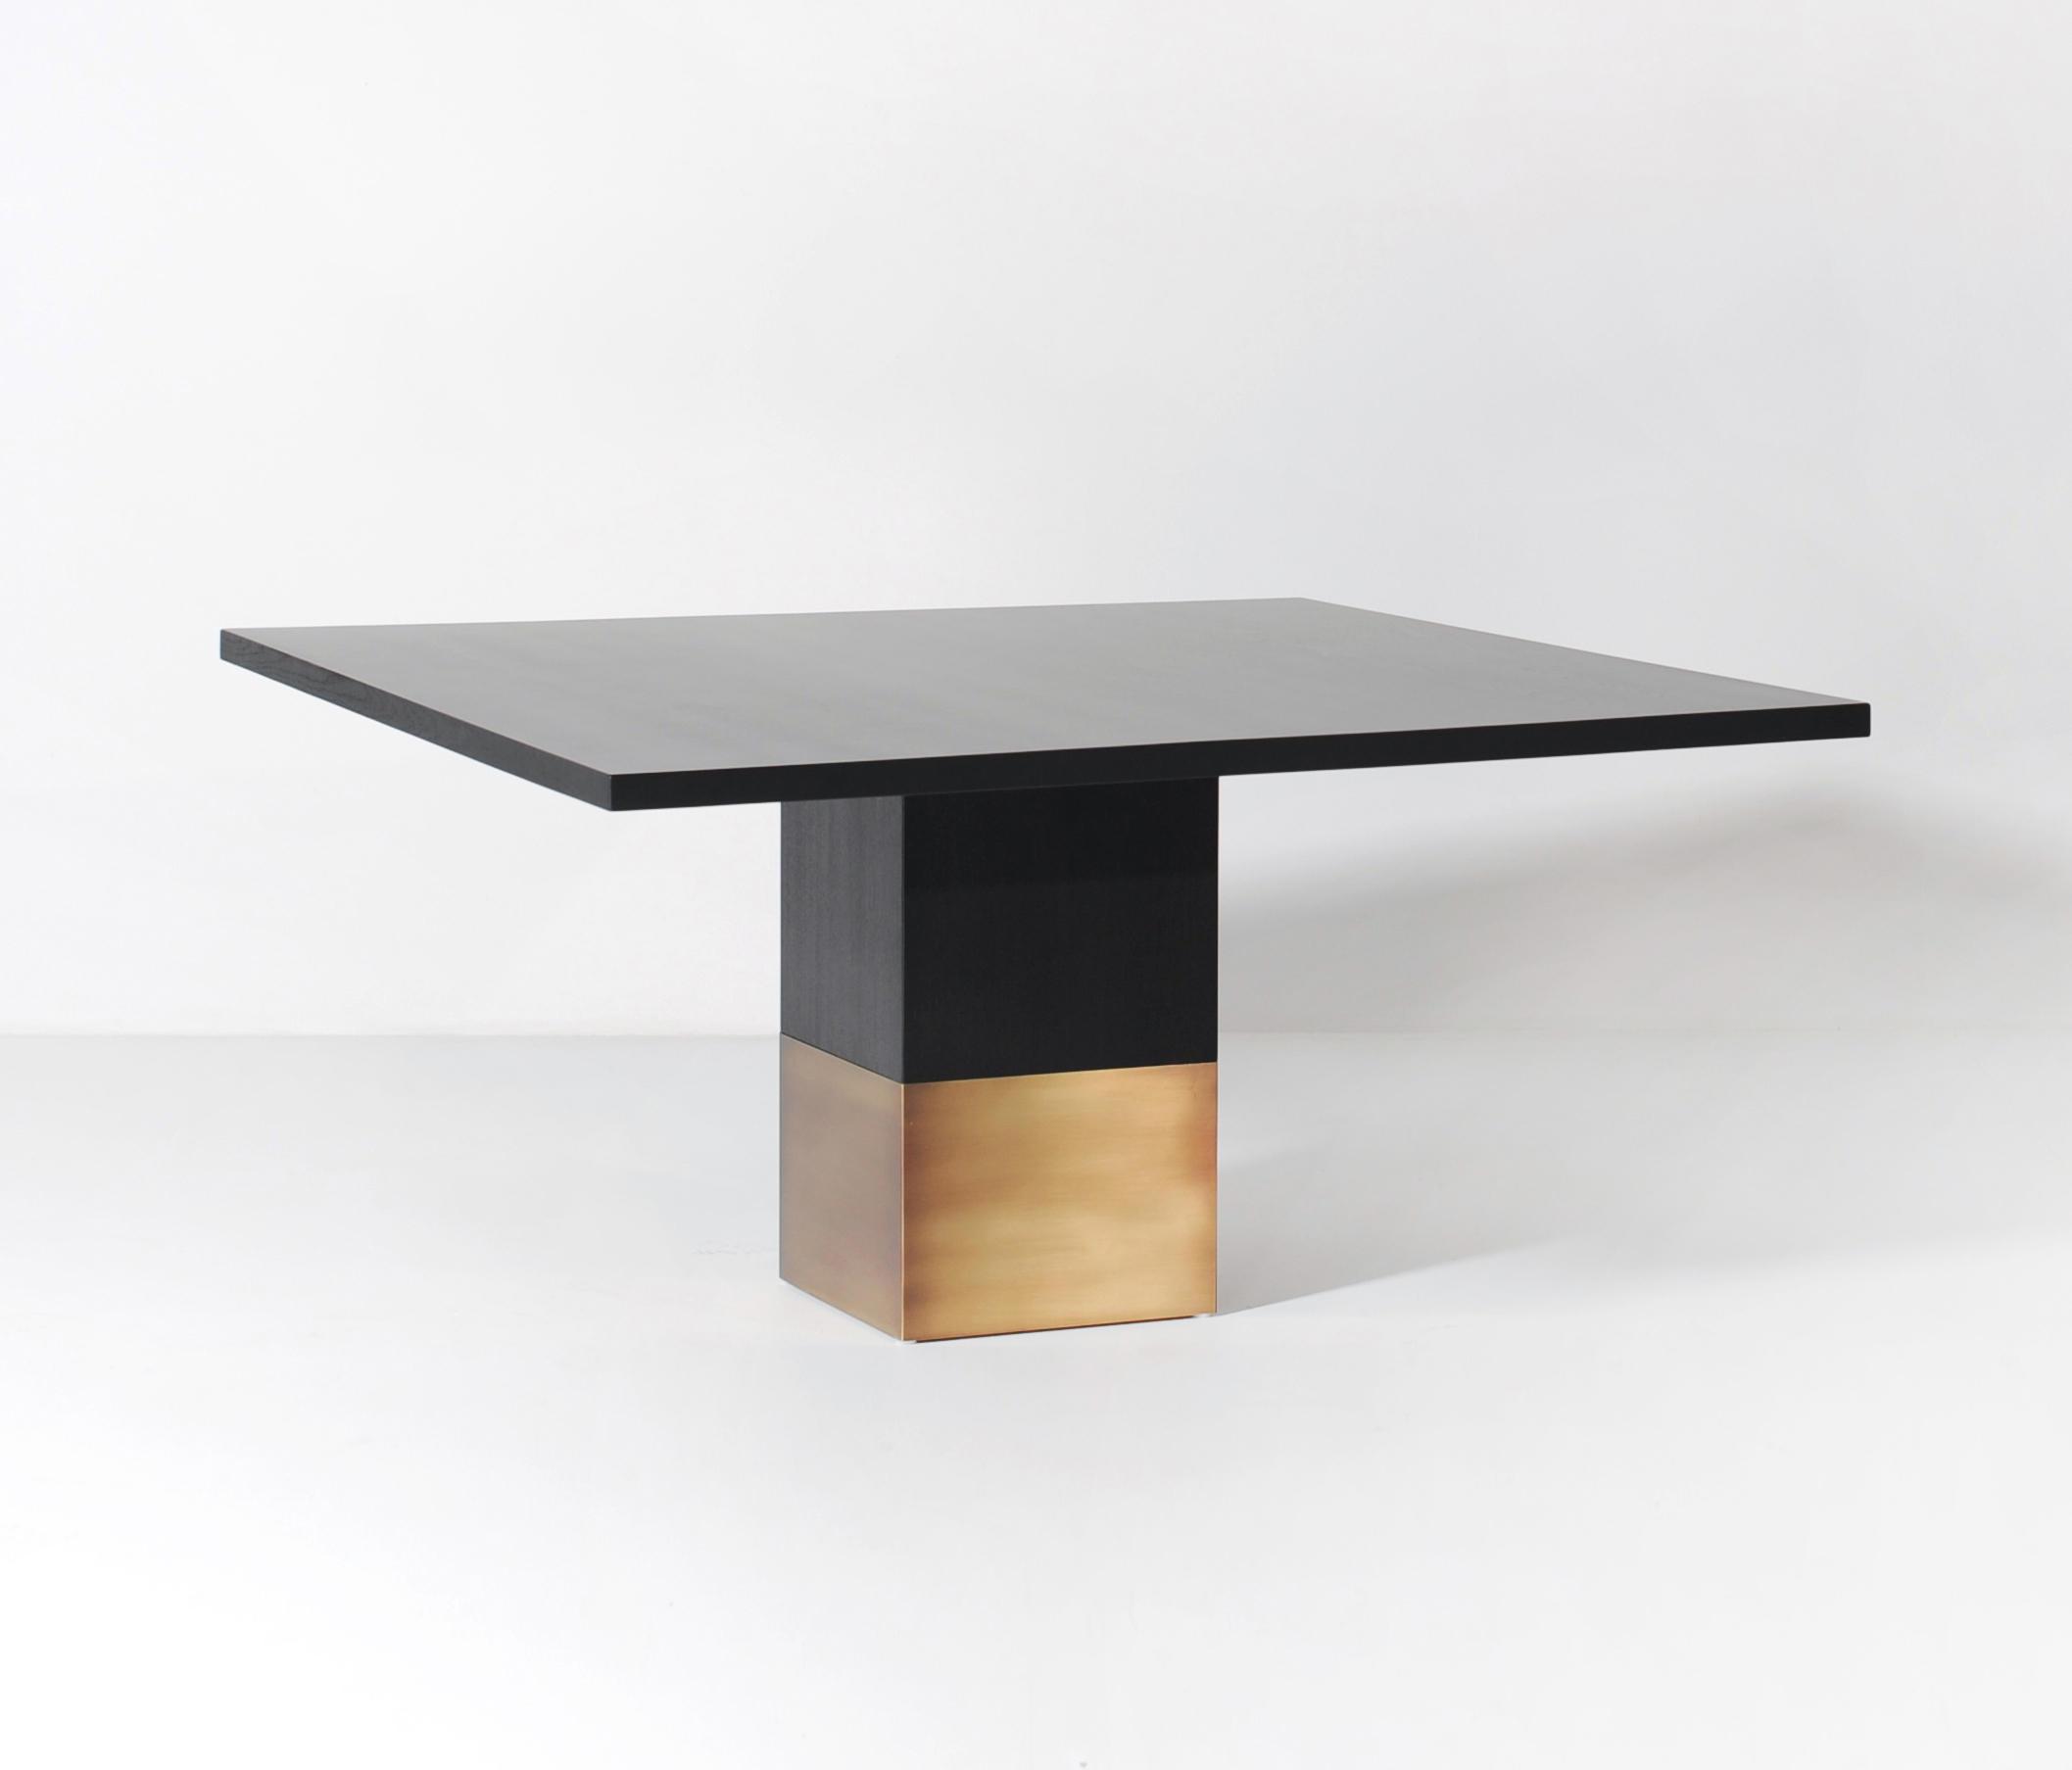 nota bene dining table square dining tables from van rossum architonic. Black Bedroom Furniture Sets. Home Design Ideas